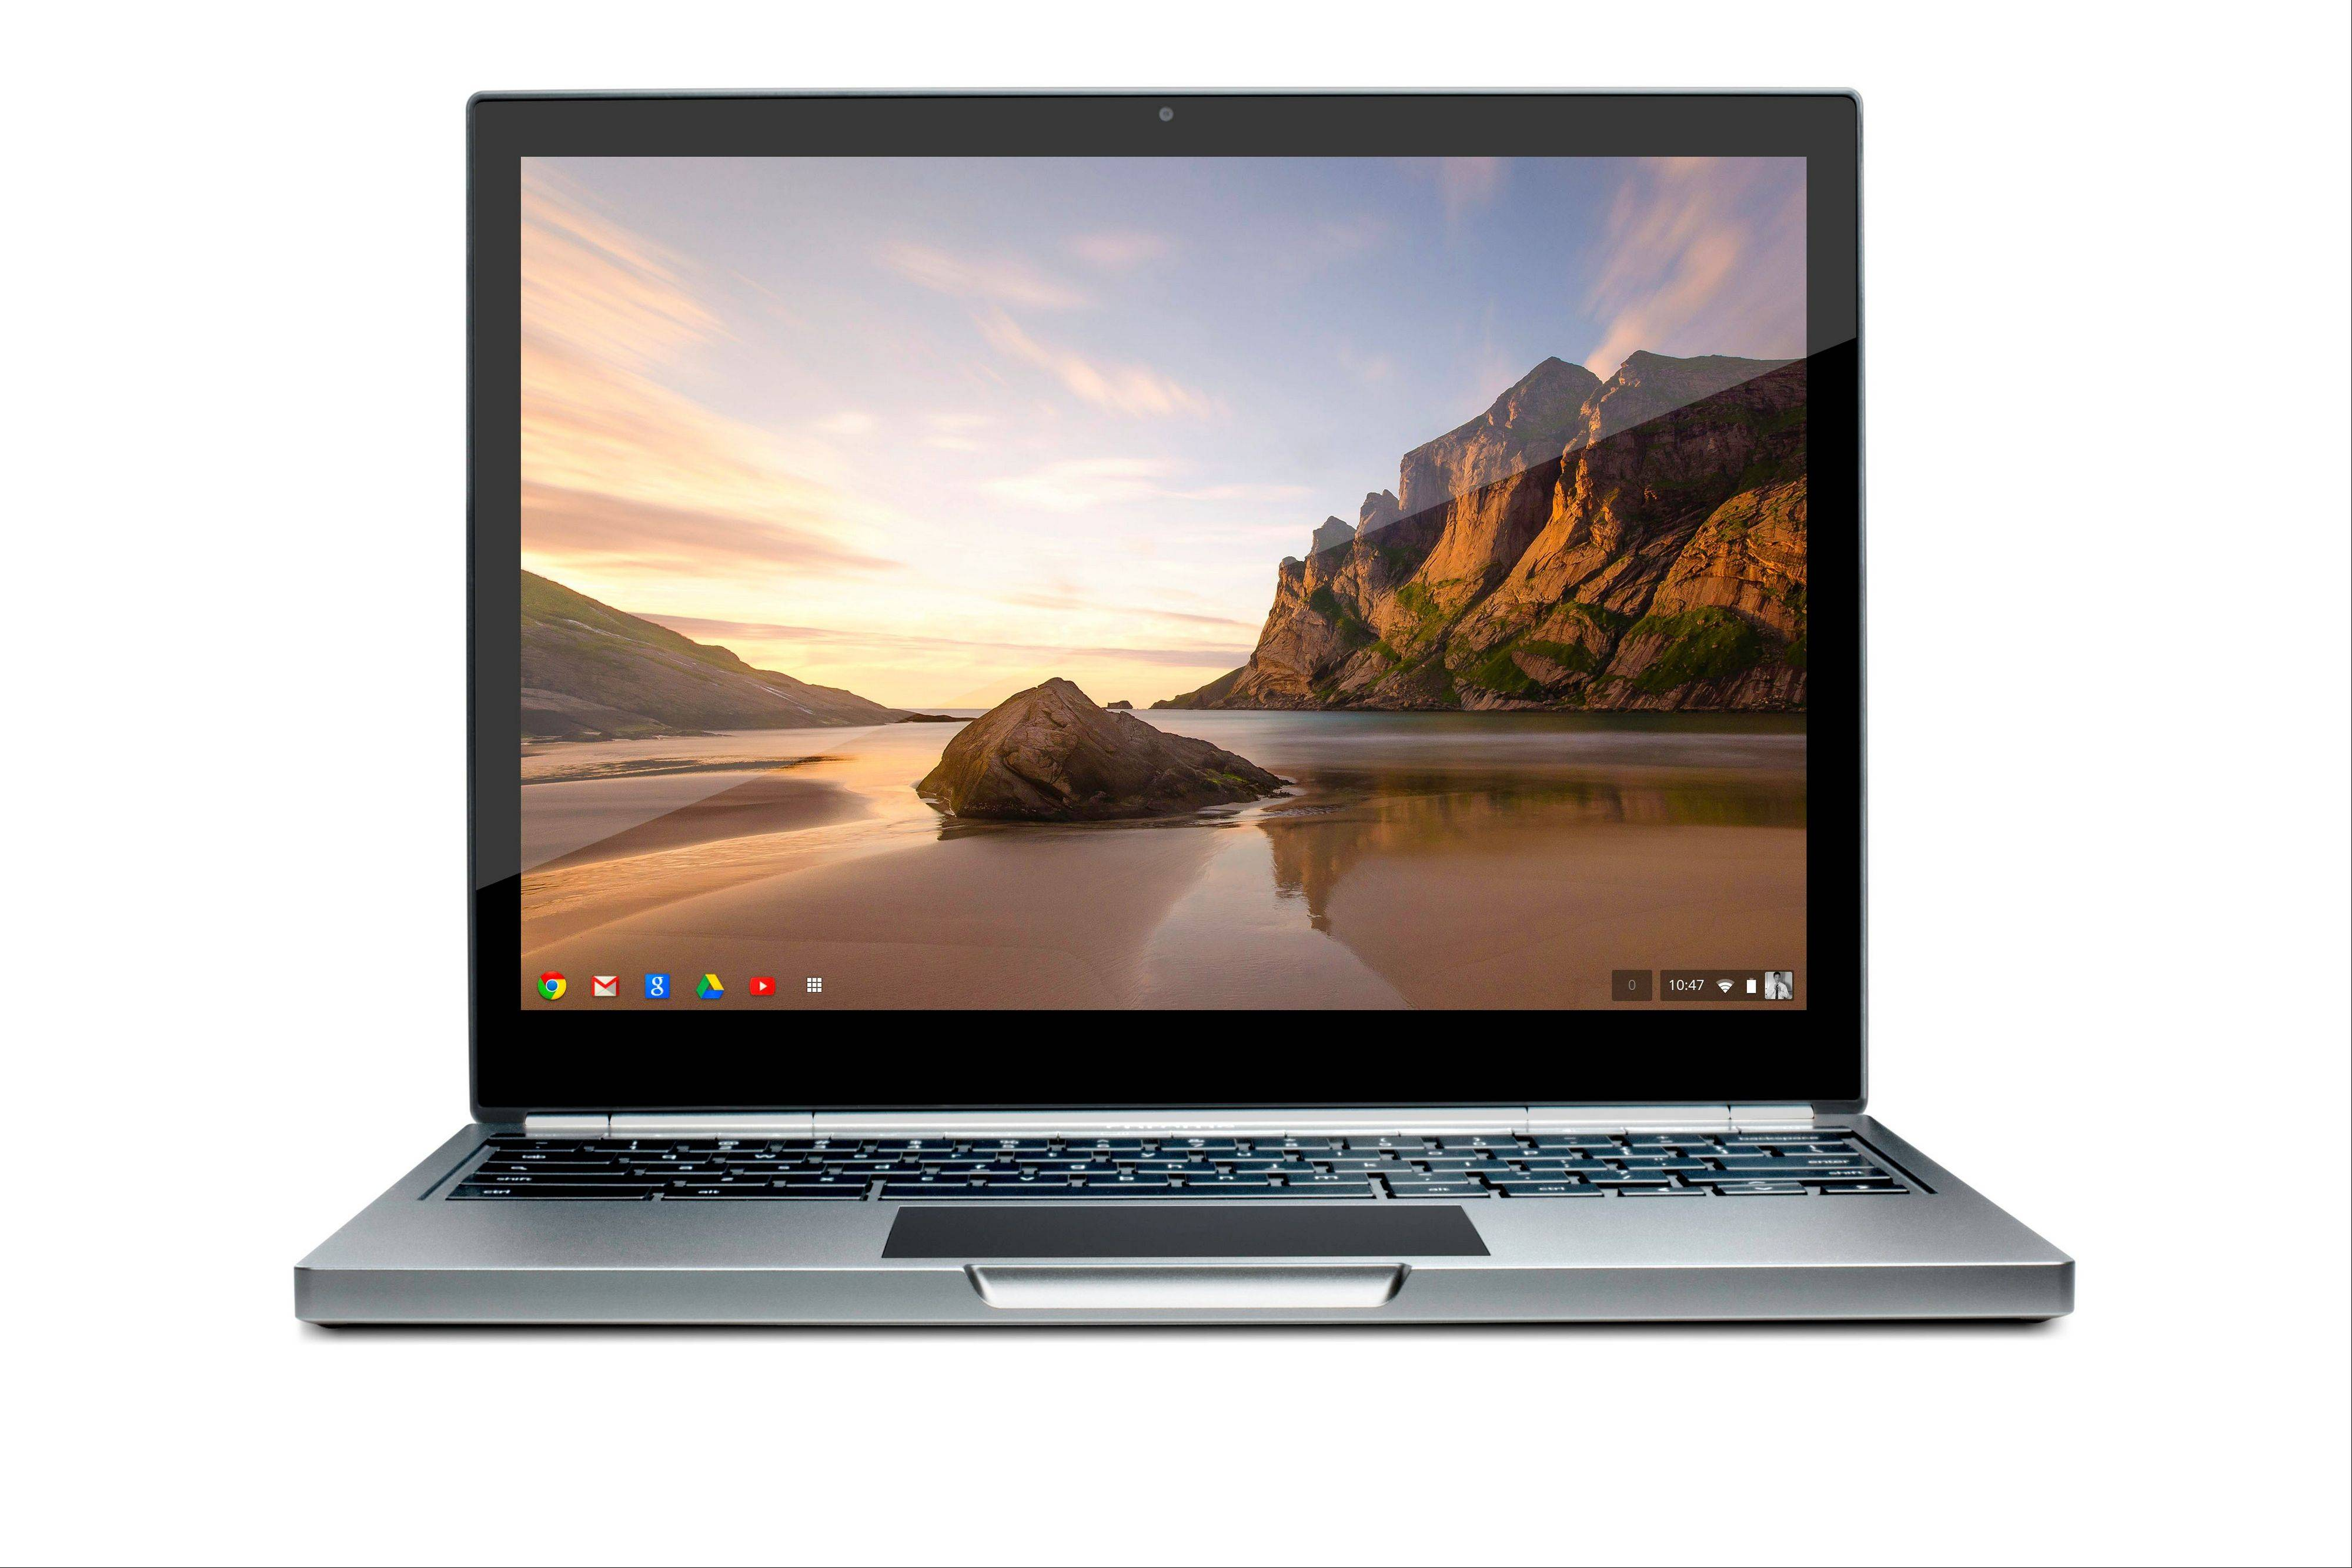 This image provided by Google shows the company�s first high-end chromebook Pixel. According to a review by the Associated Press, the machine feels light and comfortable in my hands and its high-resolution display makes photos appear sharp.